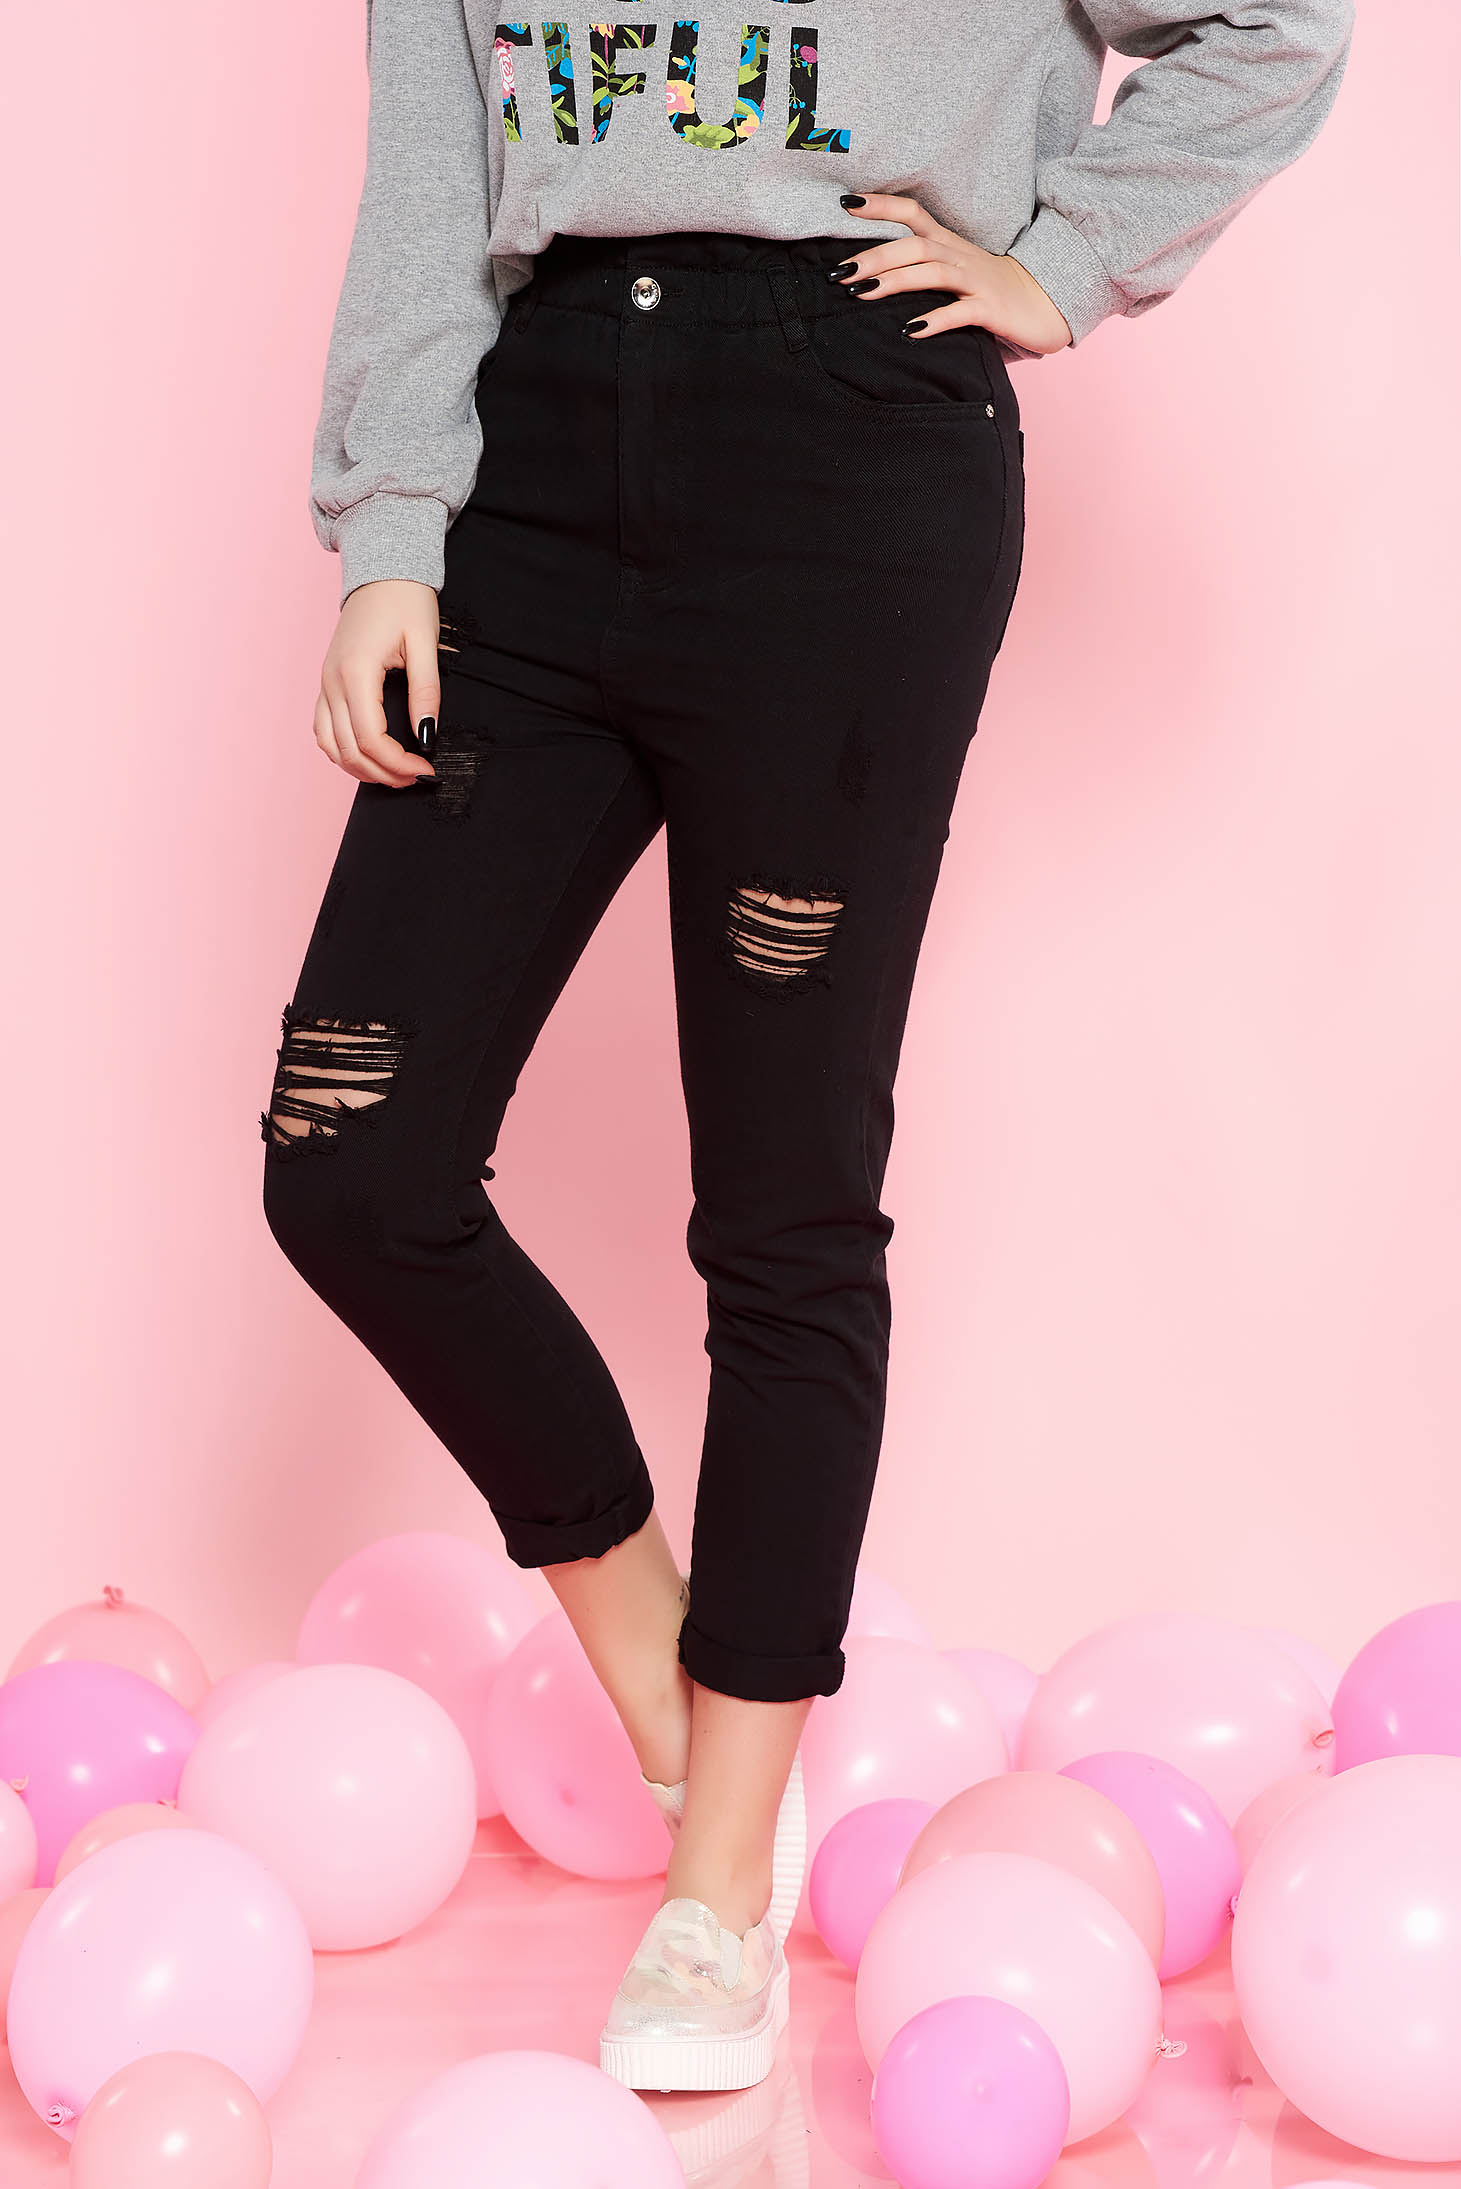 SunShine black casual high waisted cotton jeans with pockets with ruptures